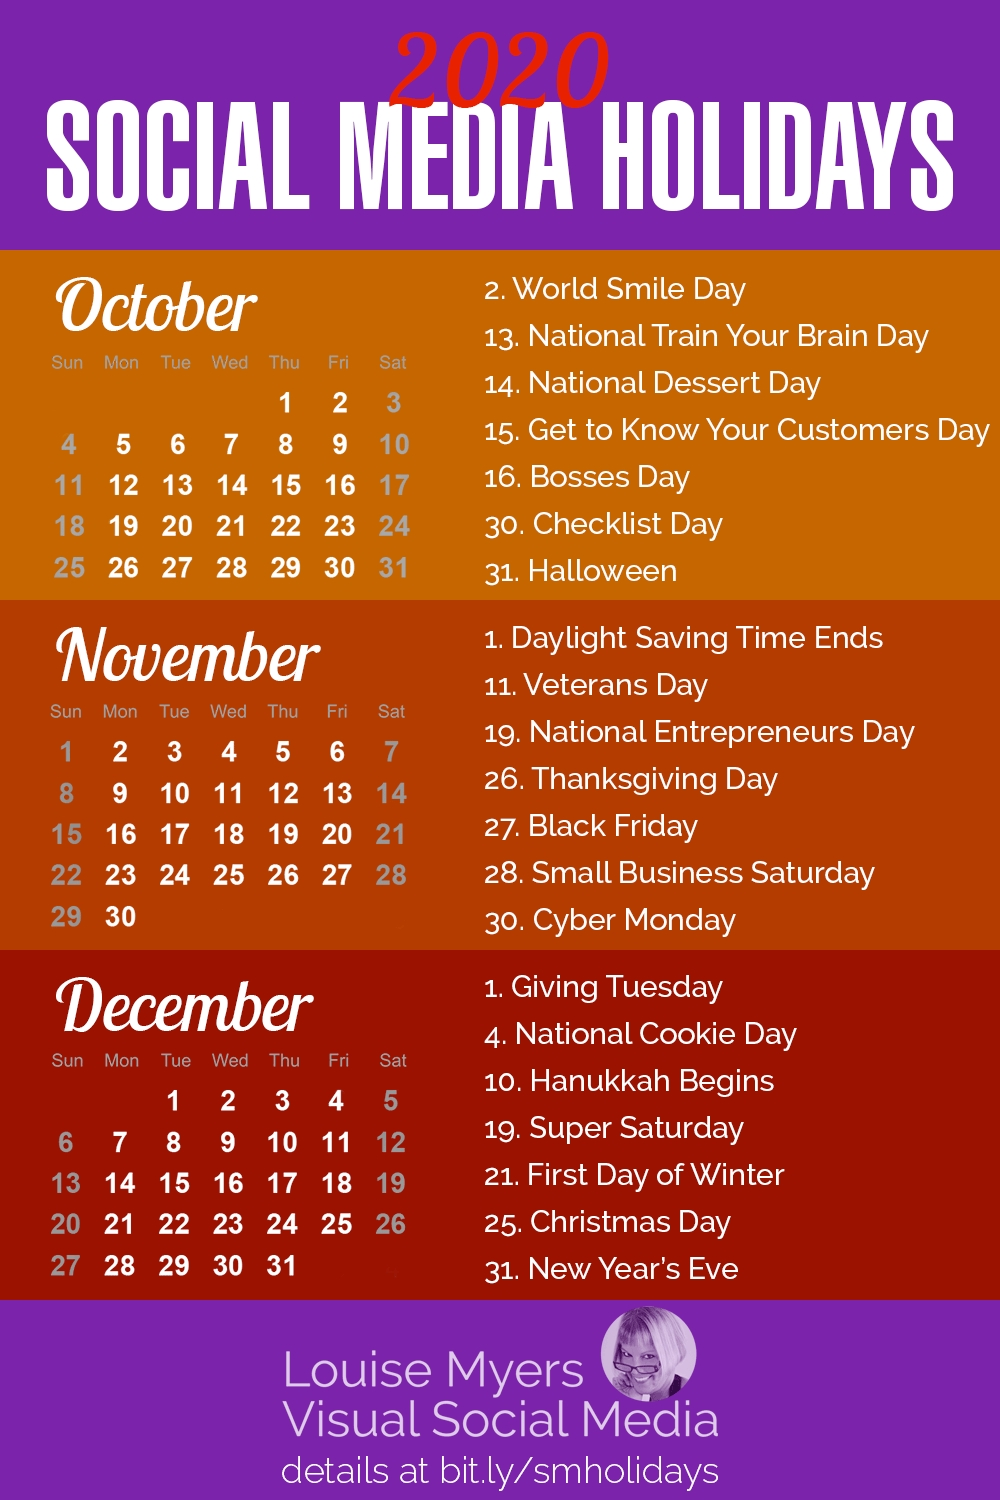 84 Social Media Holidays You Need In 2020: Indispensable! in Year Of Special Days 2020